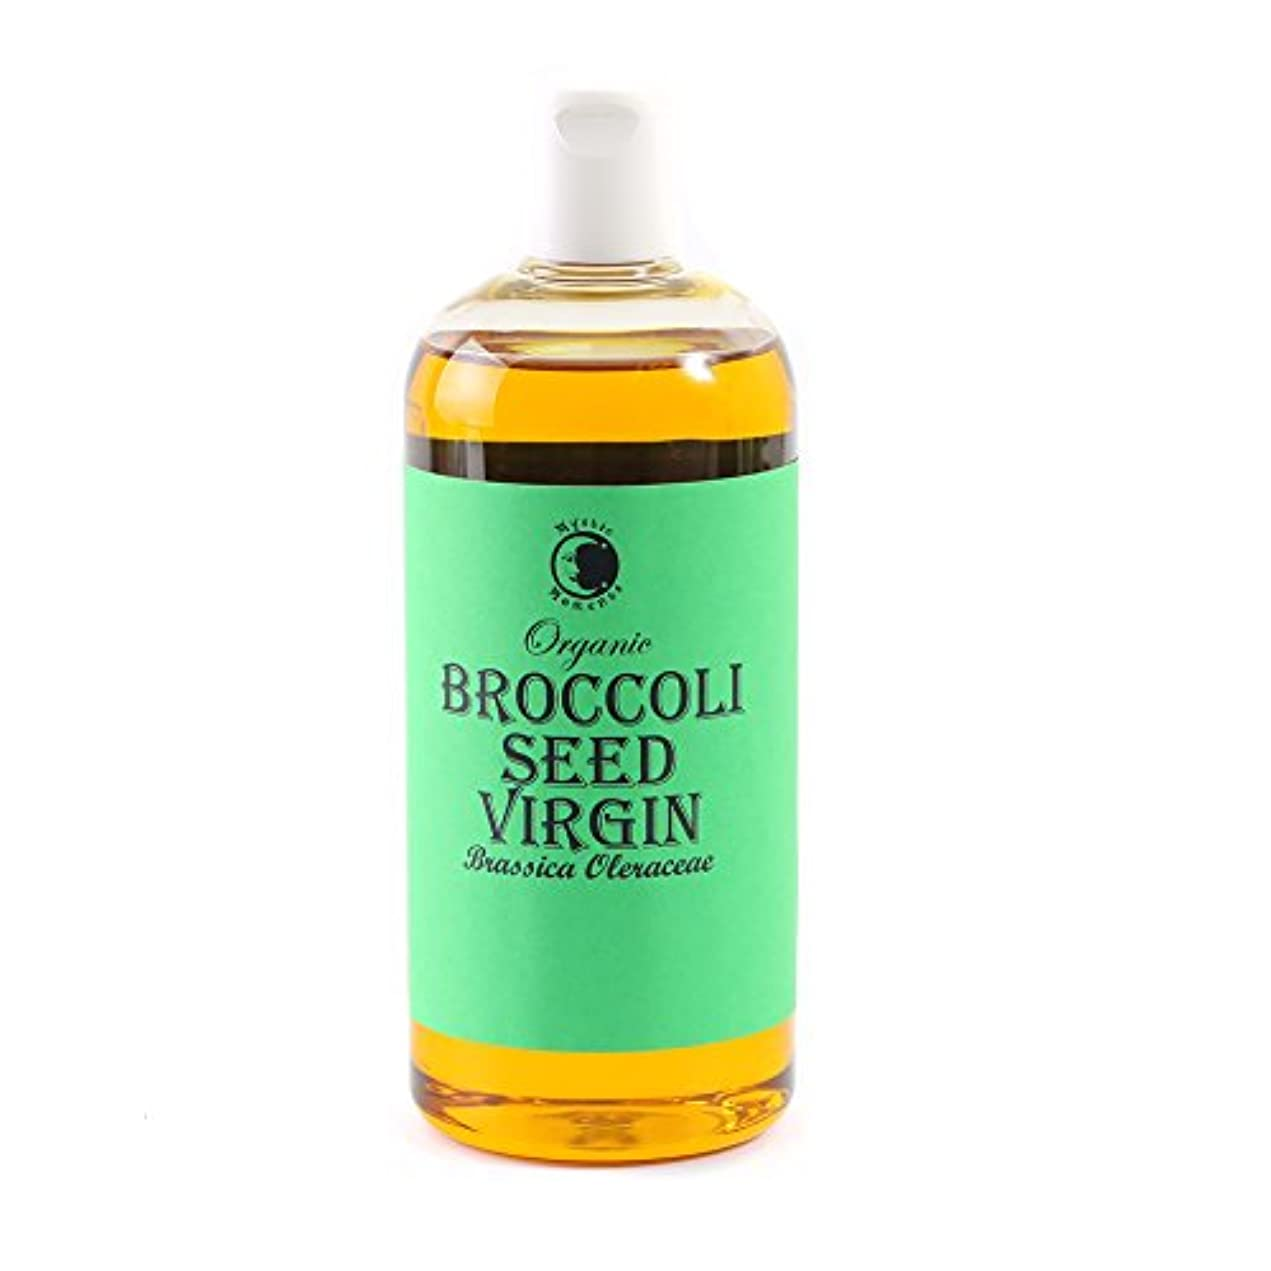 生じる歯科のナビゲーションMystic Moments | Broccoli Seed Virgin Organic Carrier Oil - 500ml - 100% Pure